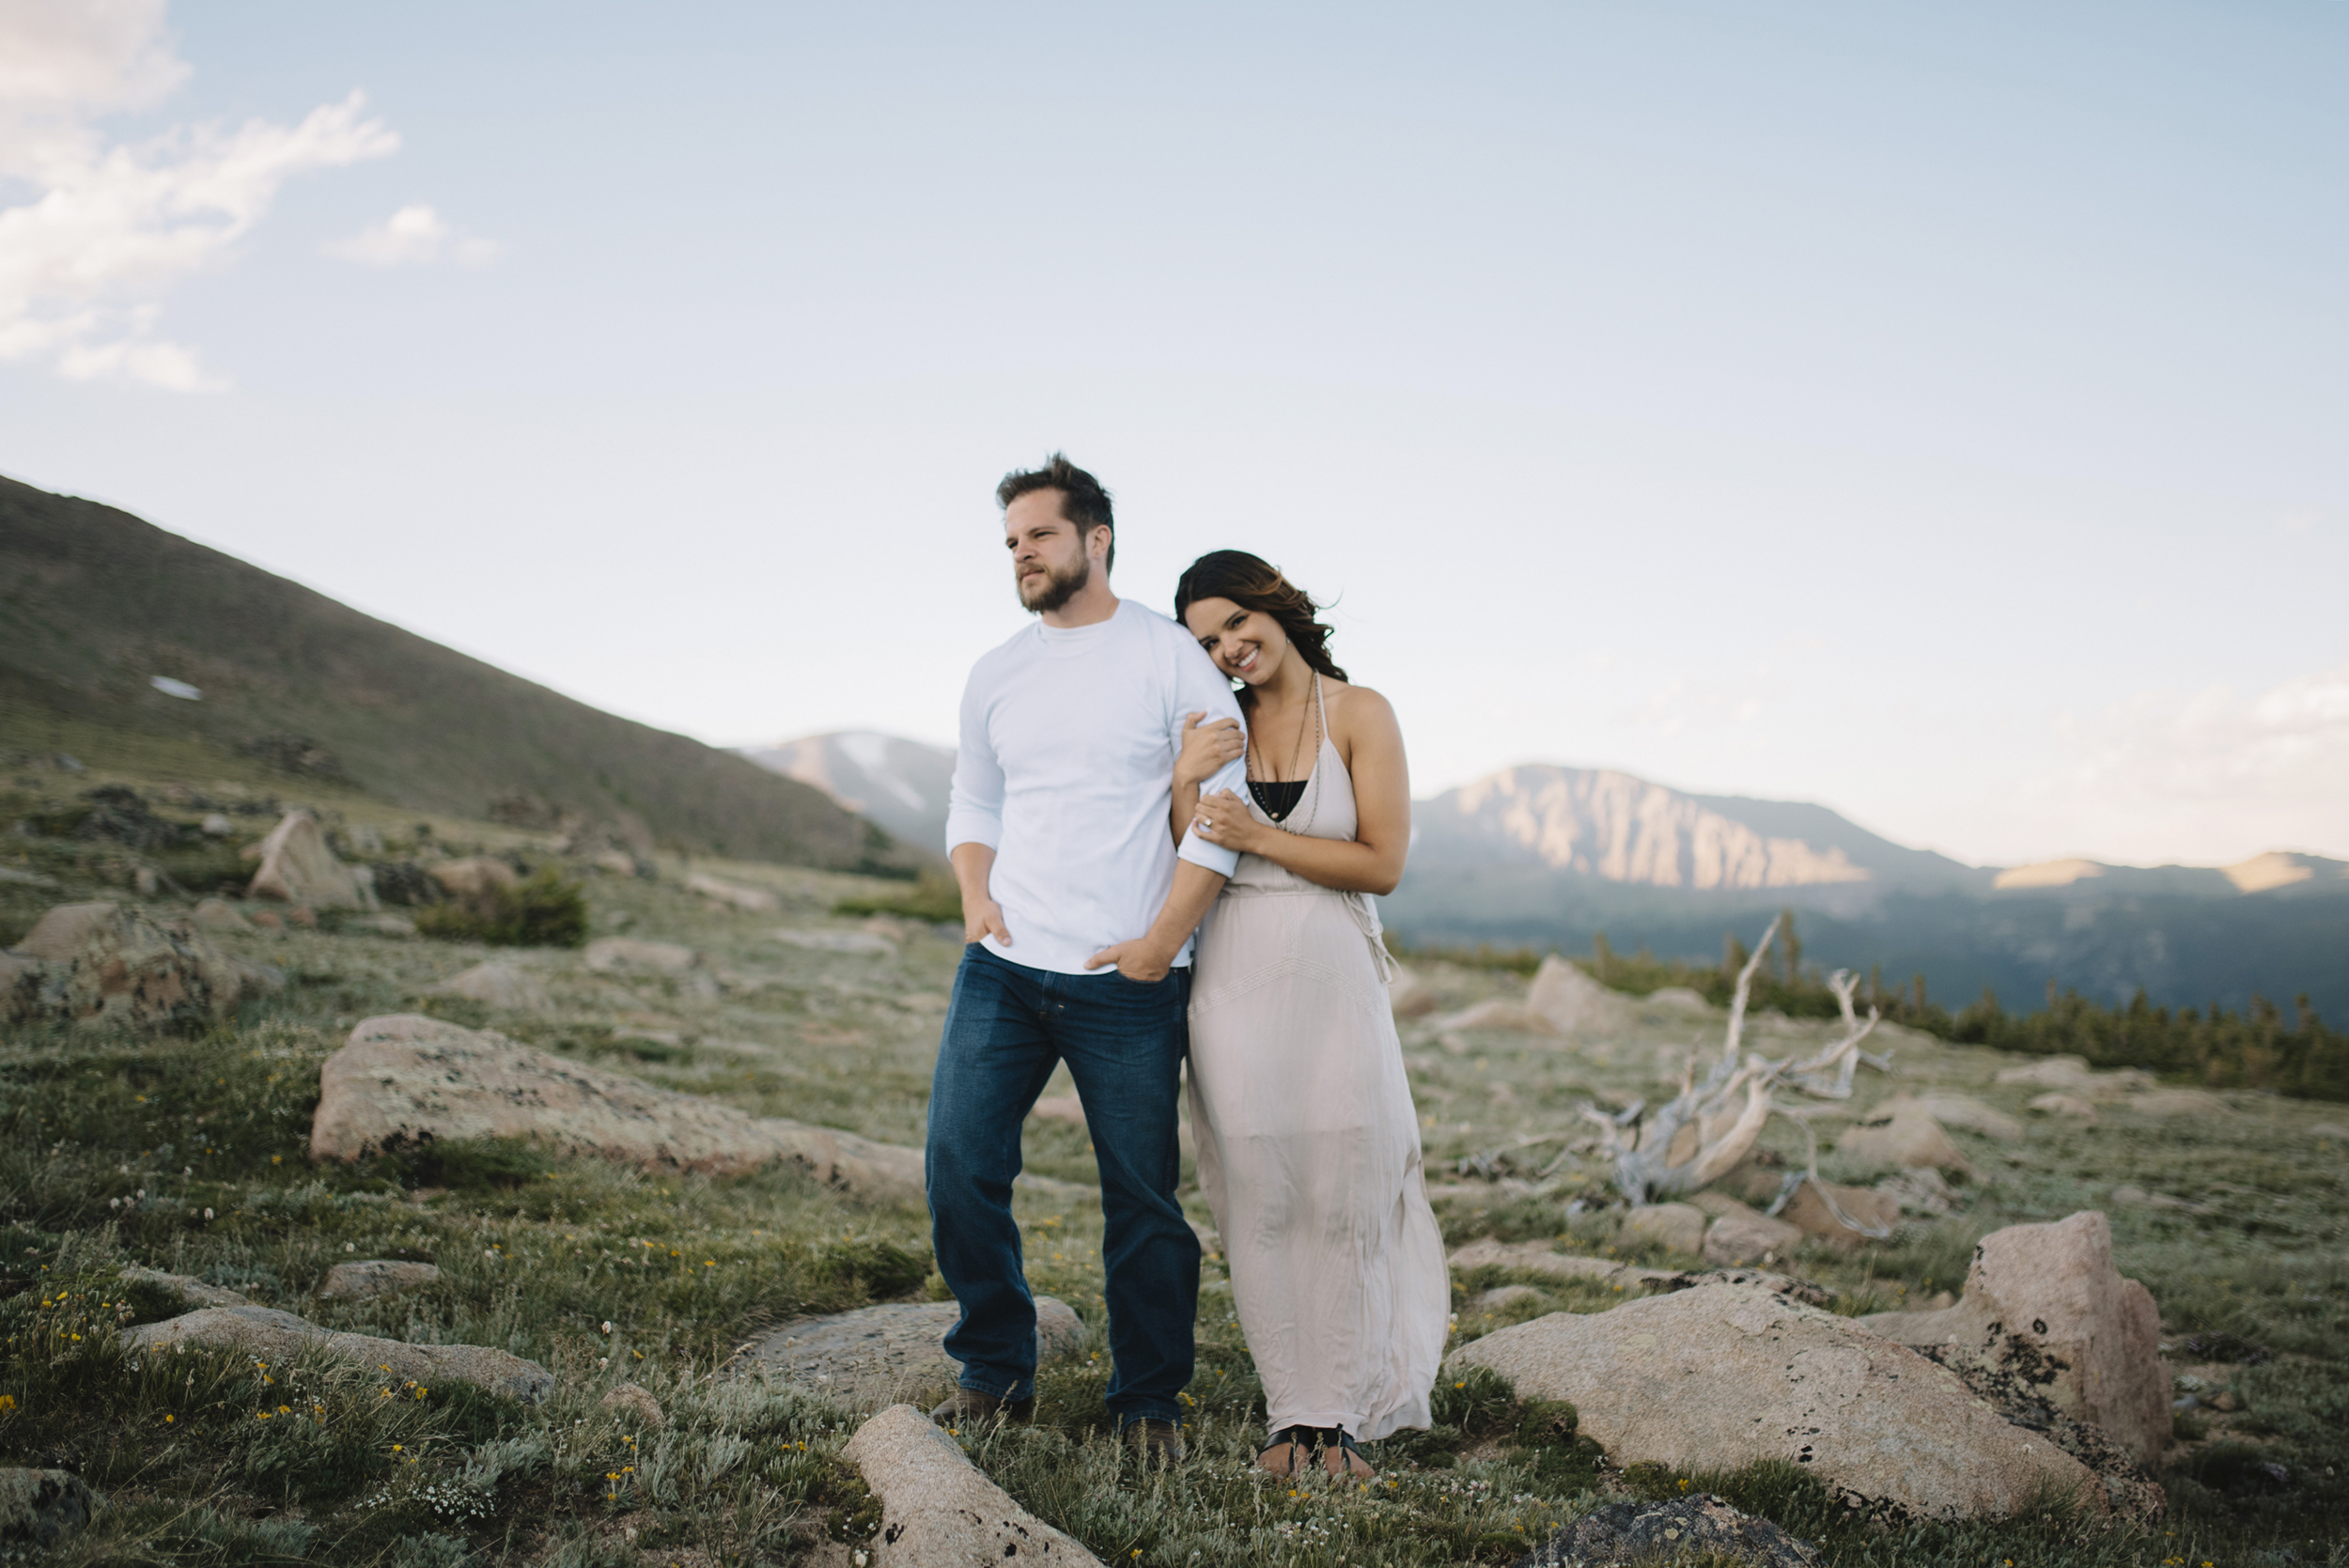 Rocky Mountain National Park Colorado Adventure Engagement Photographer158.jpg